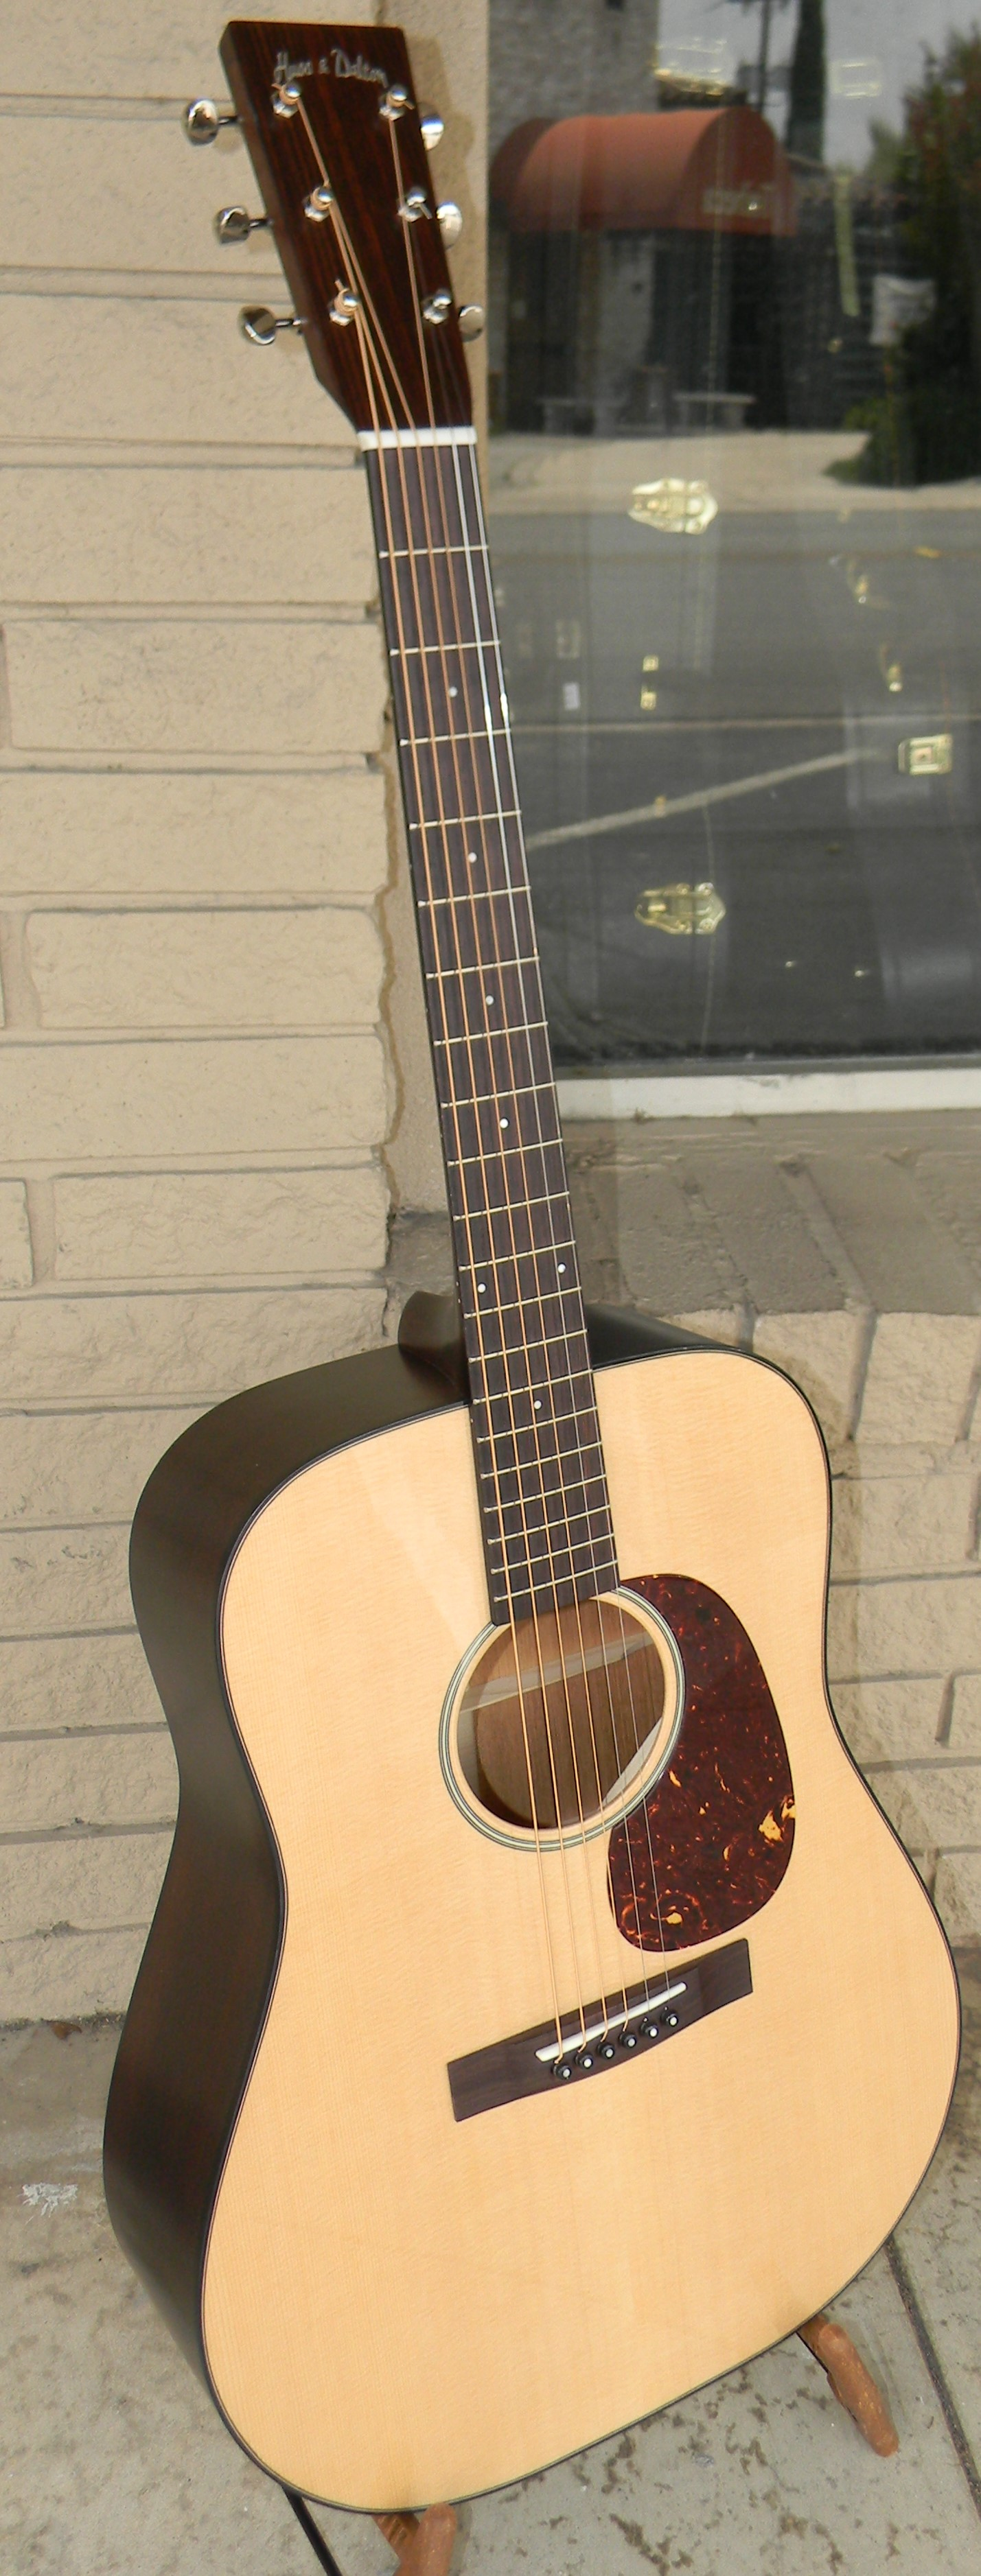 """RD-M. Huss & Dalton's new limted run on their """"Road Edition"""" guitars. These are modestly appointed with less detail, but no less attention to detail in making an exquisite guitar that's more affordable. Solid Sitka spruce and mahogany with rosewood bridge and fingerboard, gloss top. $2,750.00"""